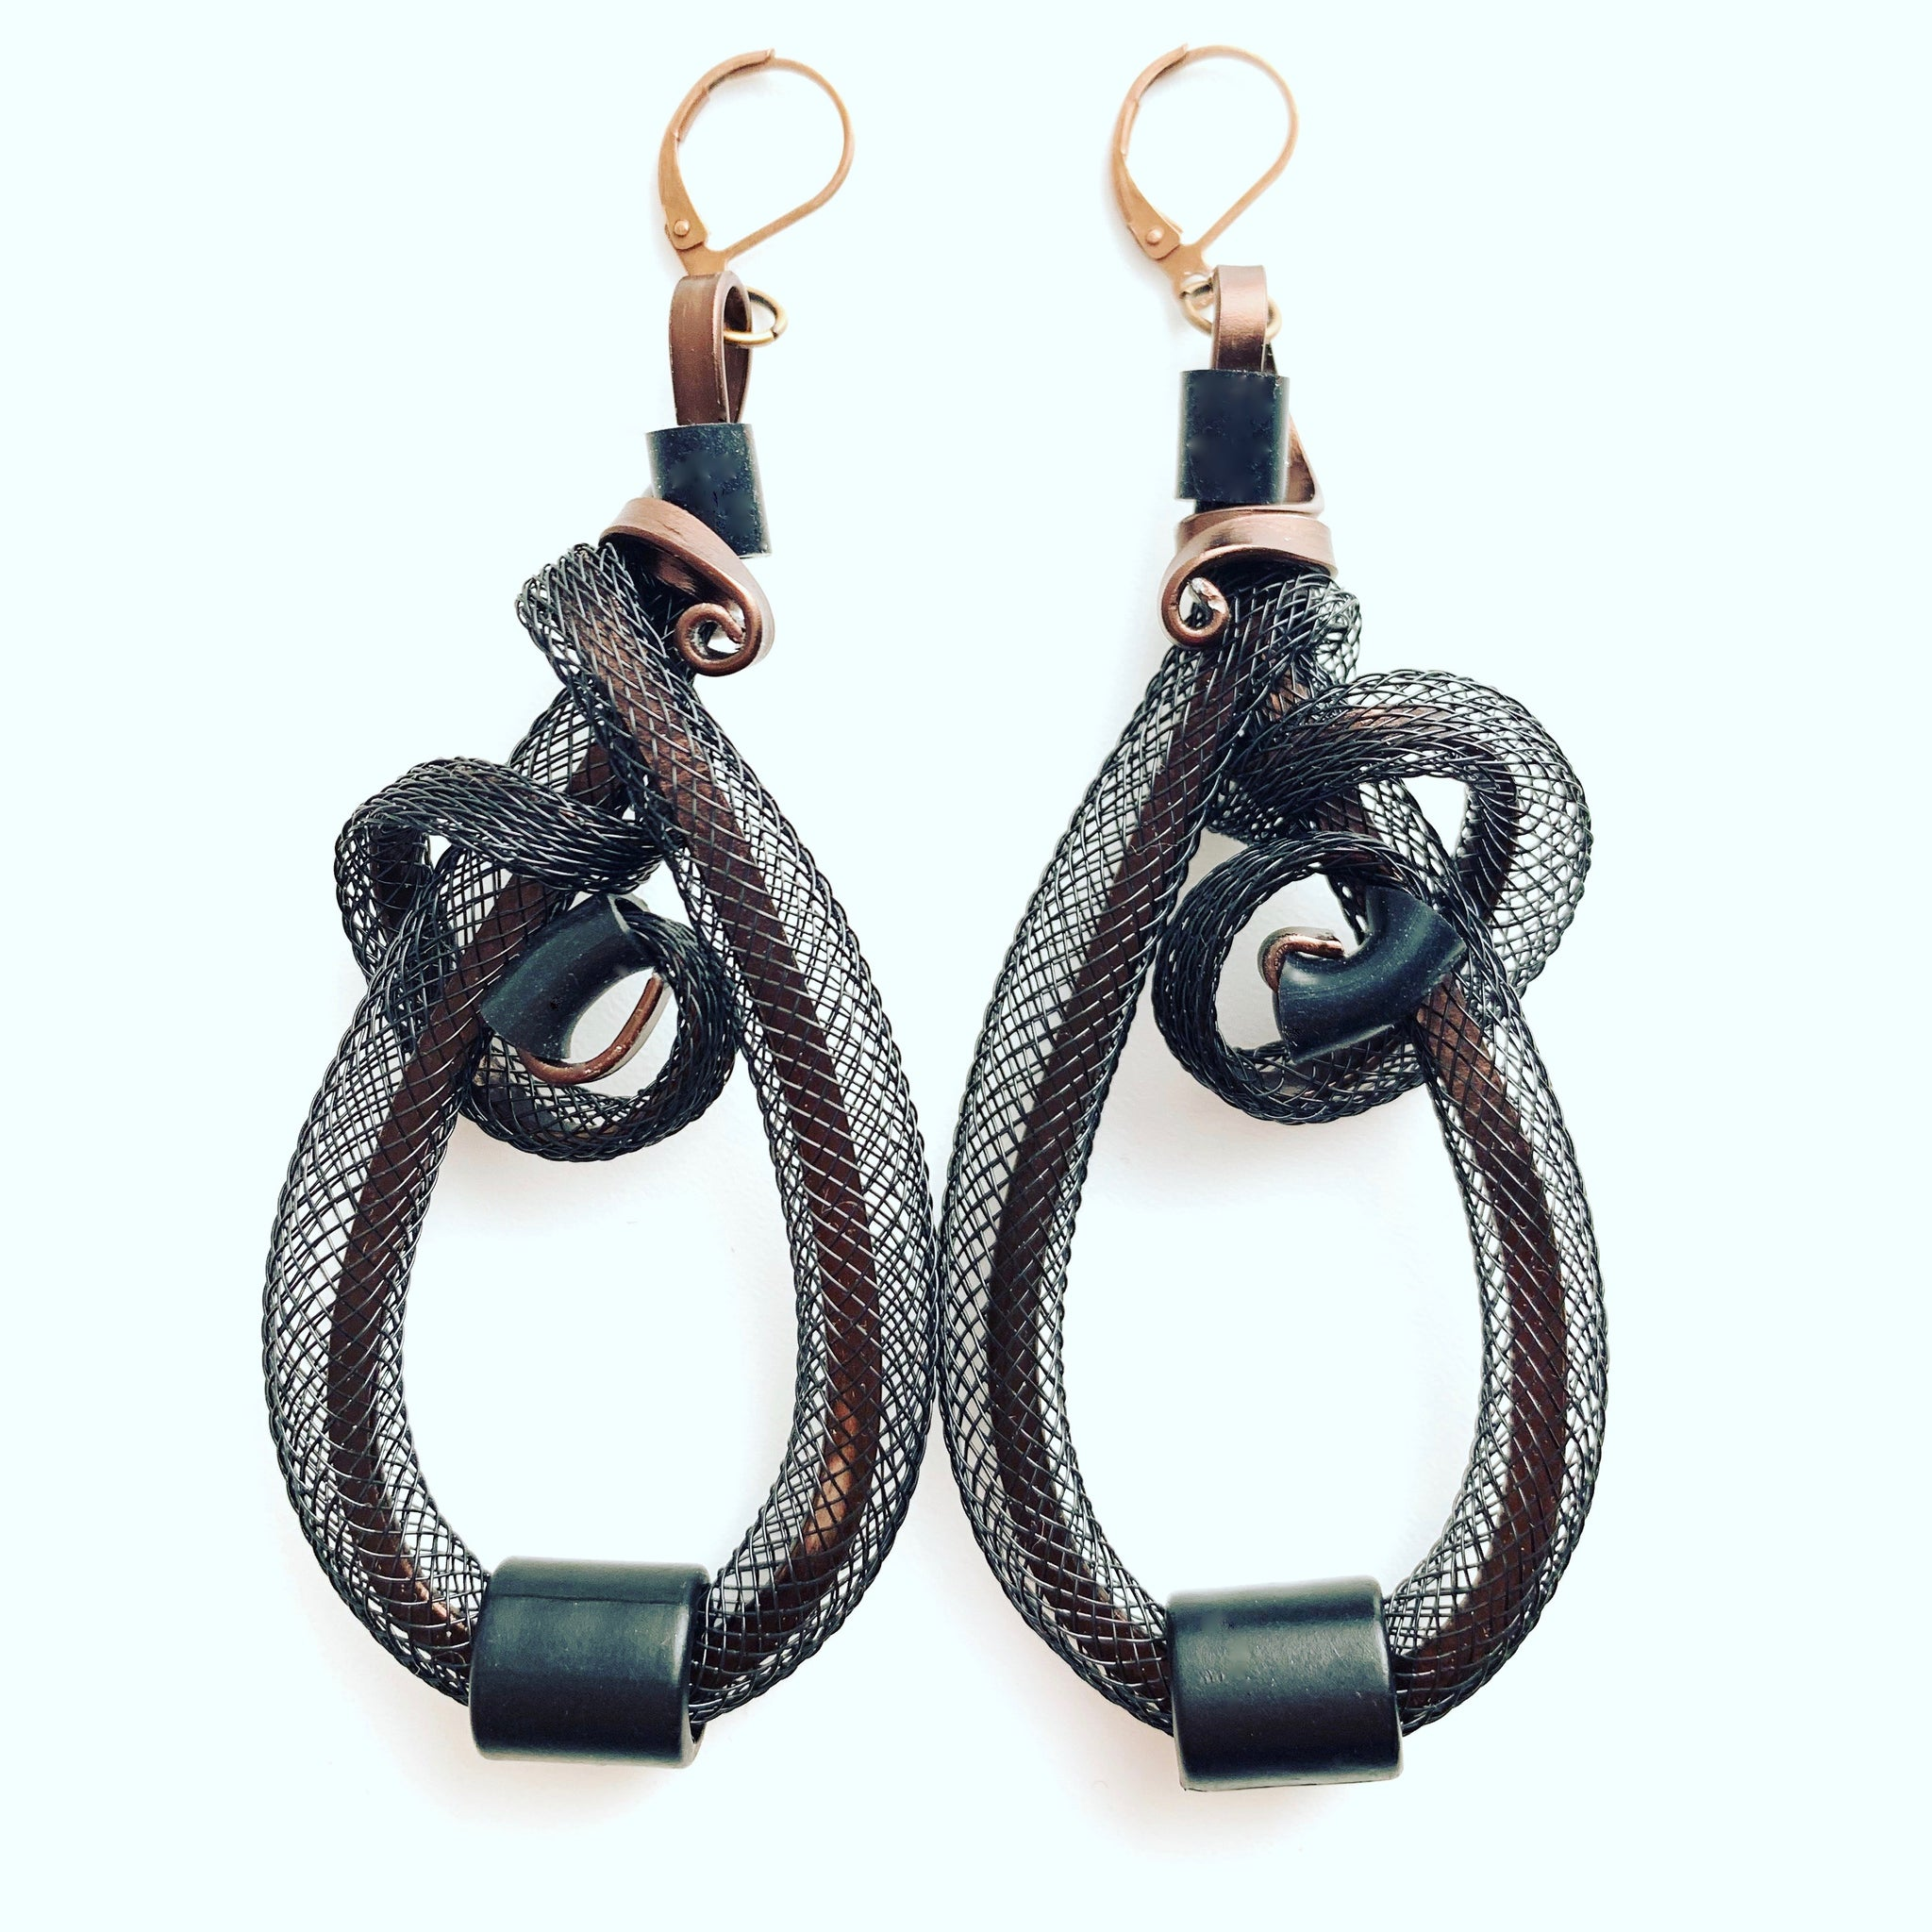 Once Made Earrings: Netted Earrings Black and Bronze with Black